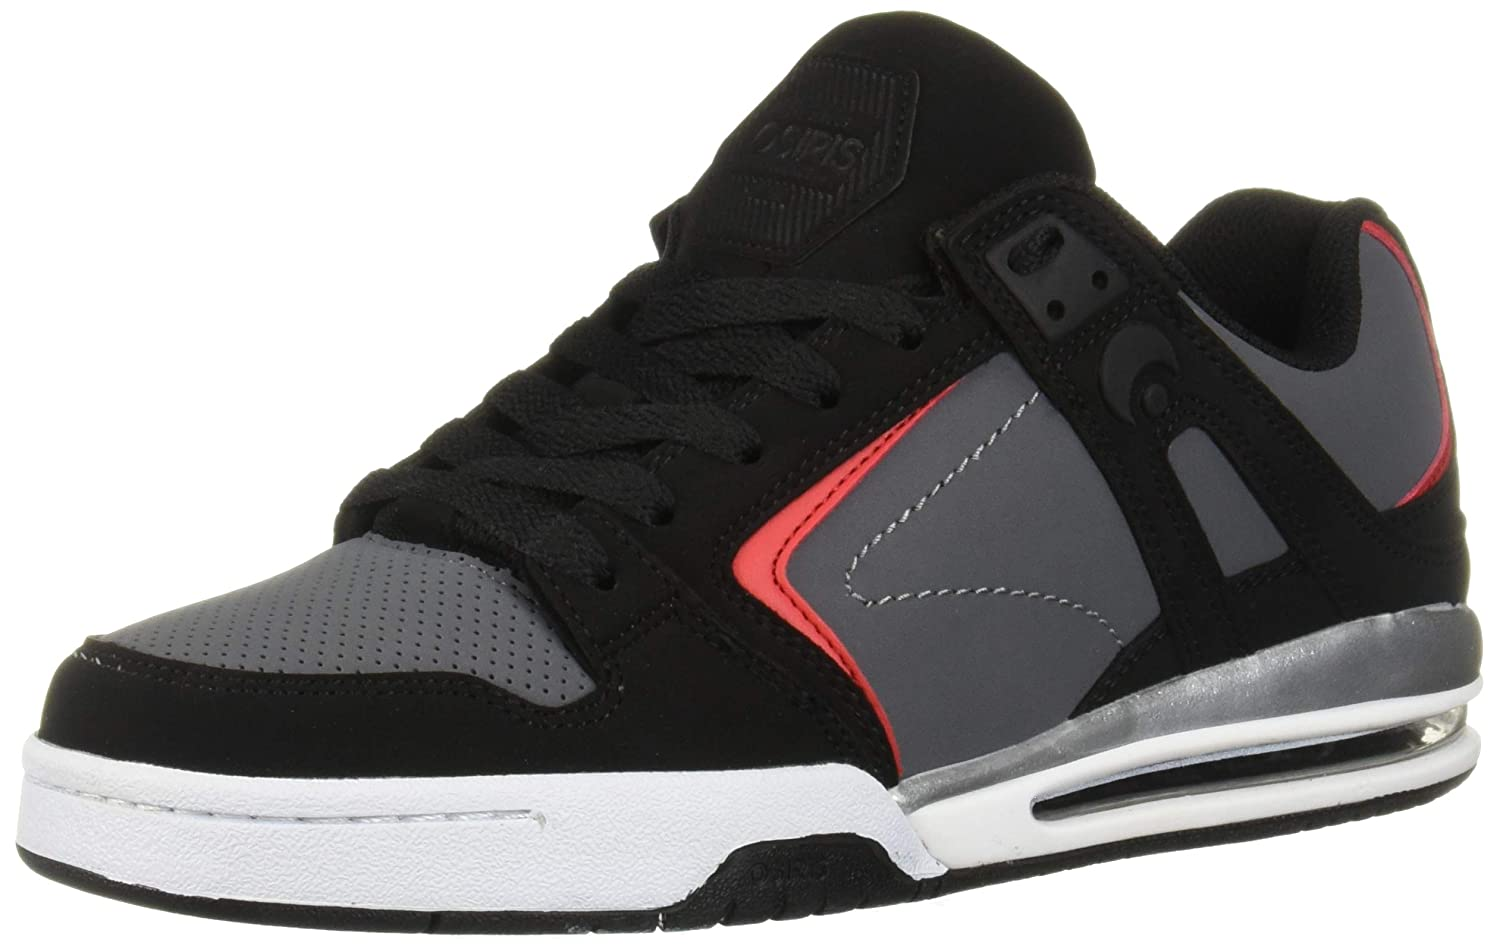 742a3b9e44c8c Osiris Men's PXL Skate Shoe